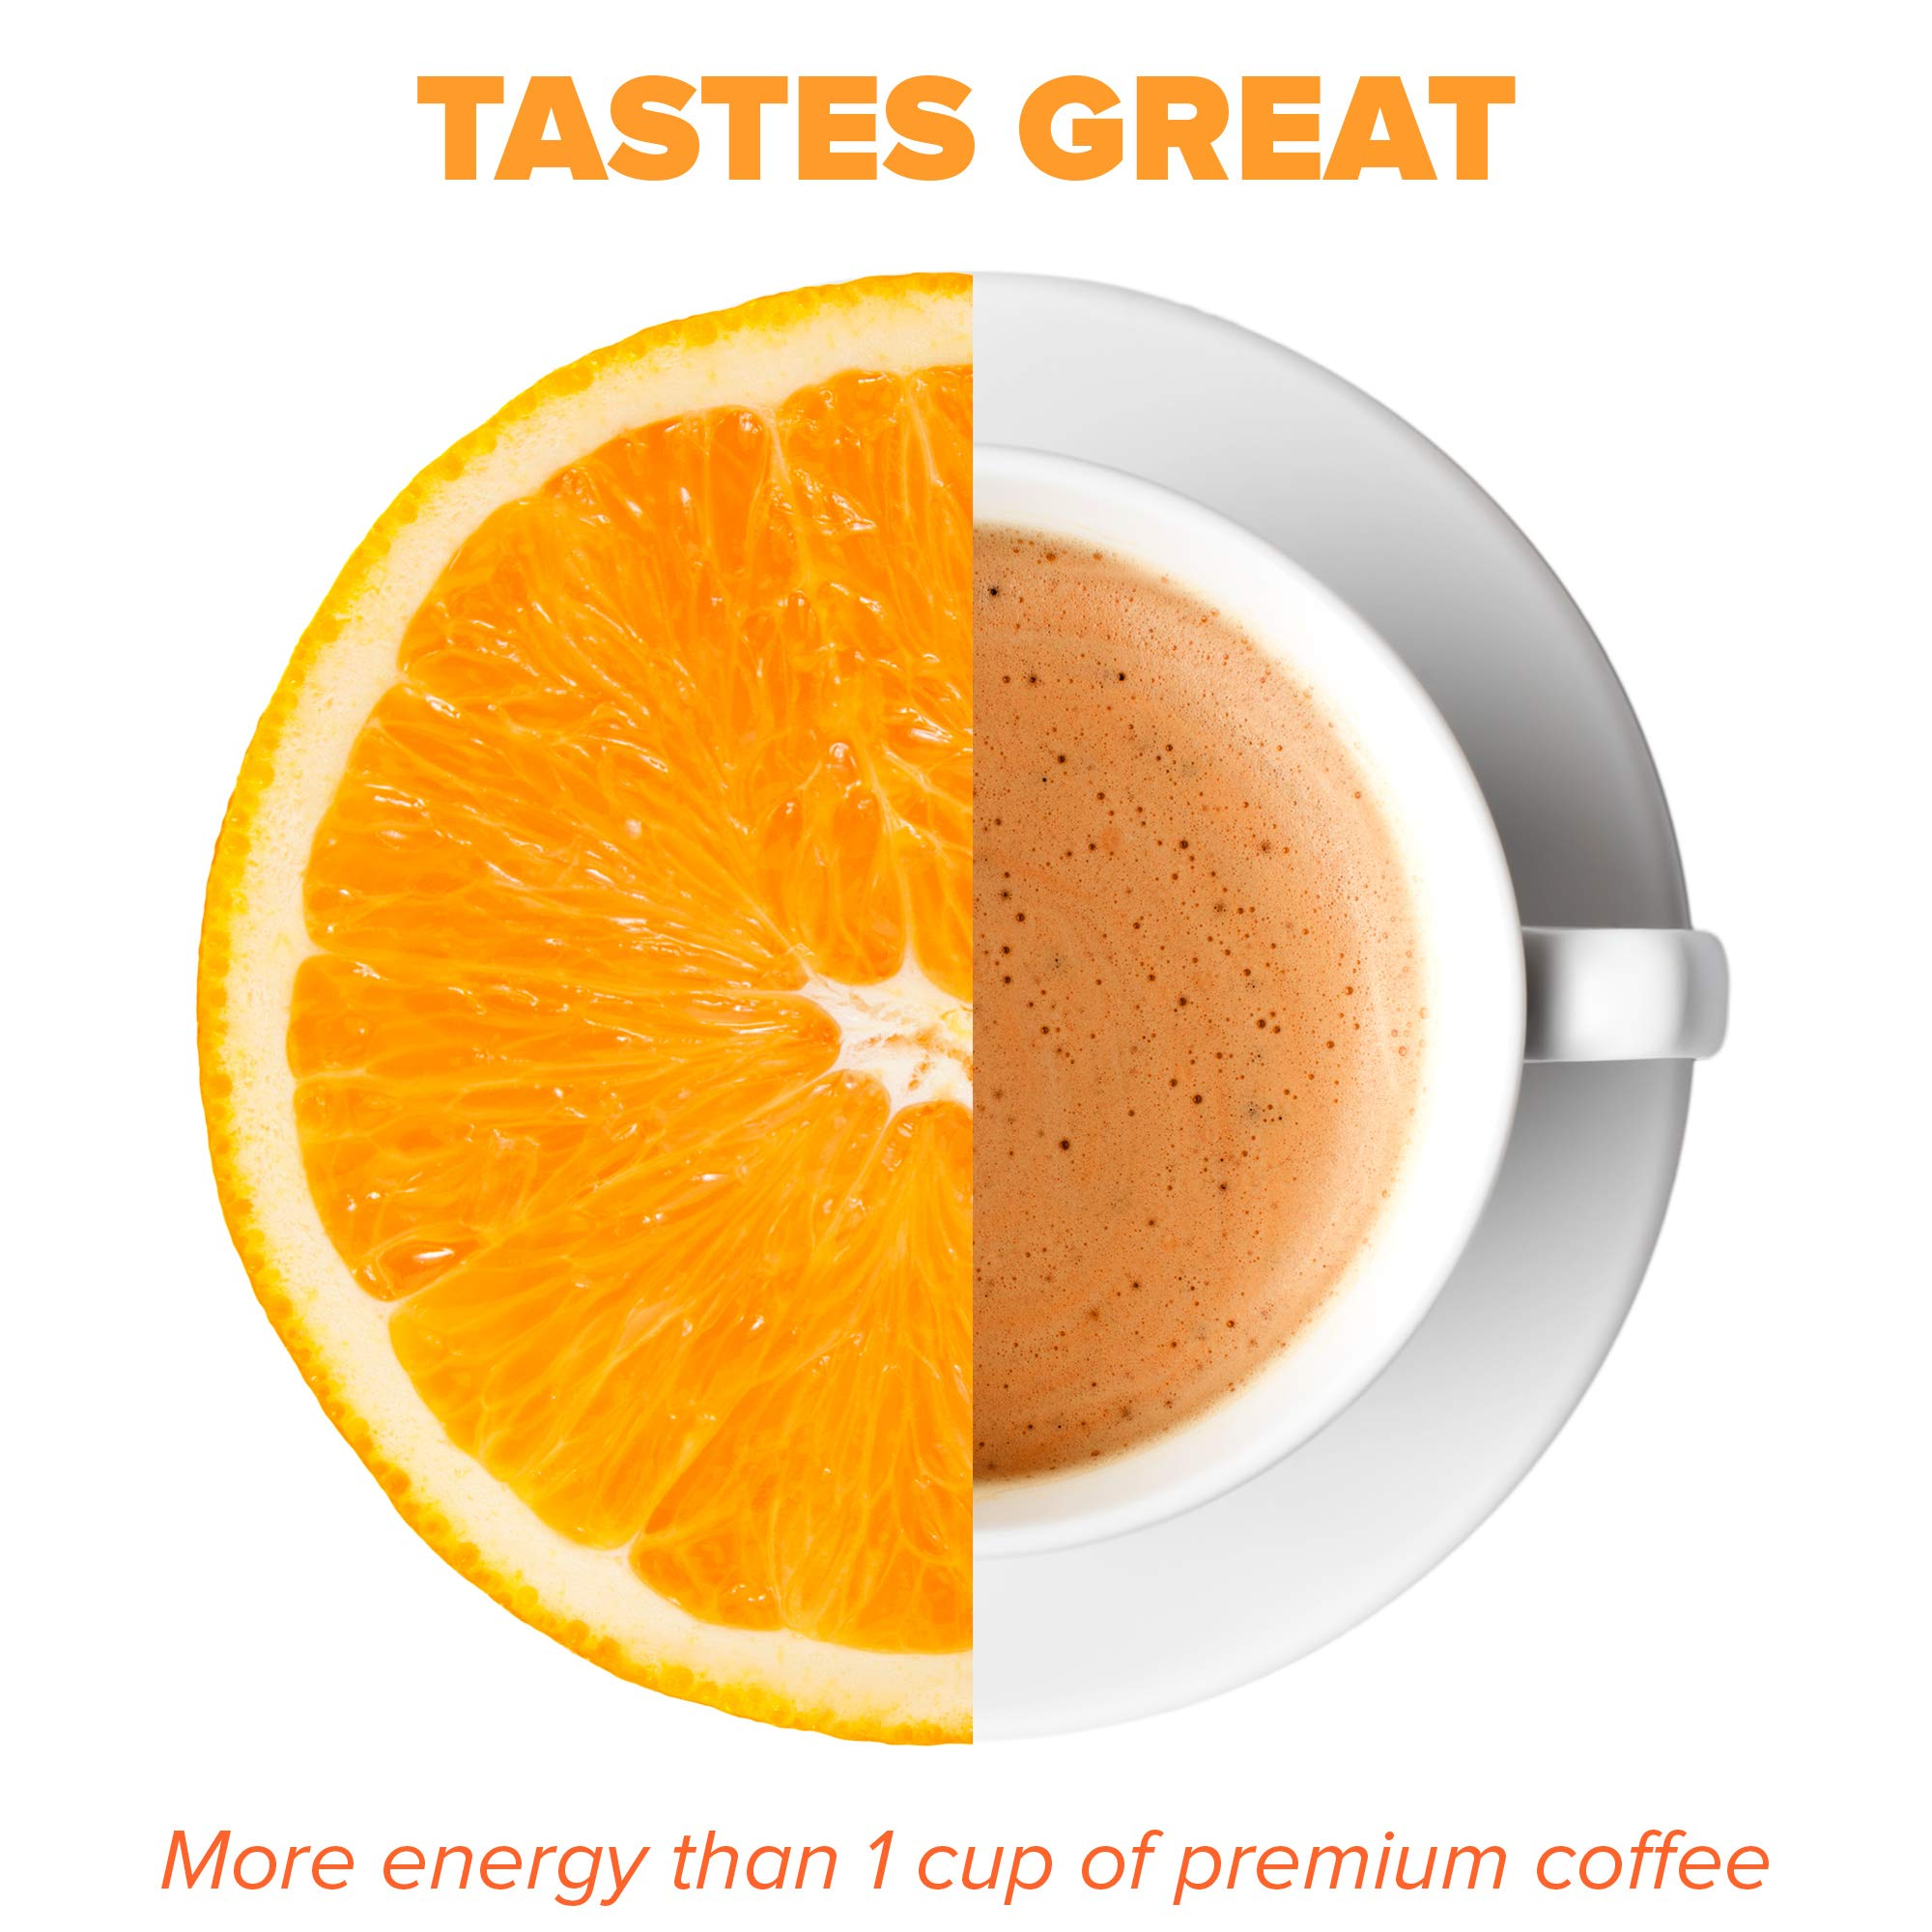 Vitamin Energy Shots – up to 7 Hours of Energy, More Vitamin C Than 10 Oranges, 0 Calories (48 Count) by Vitamin Energy (Image #2)